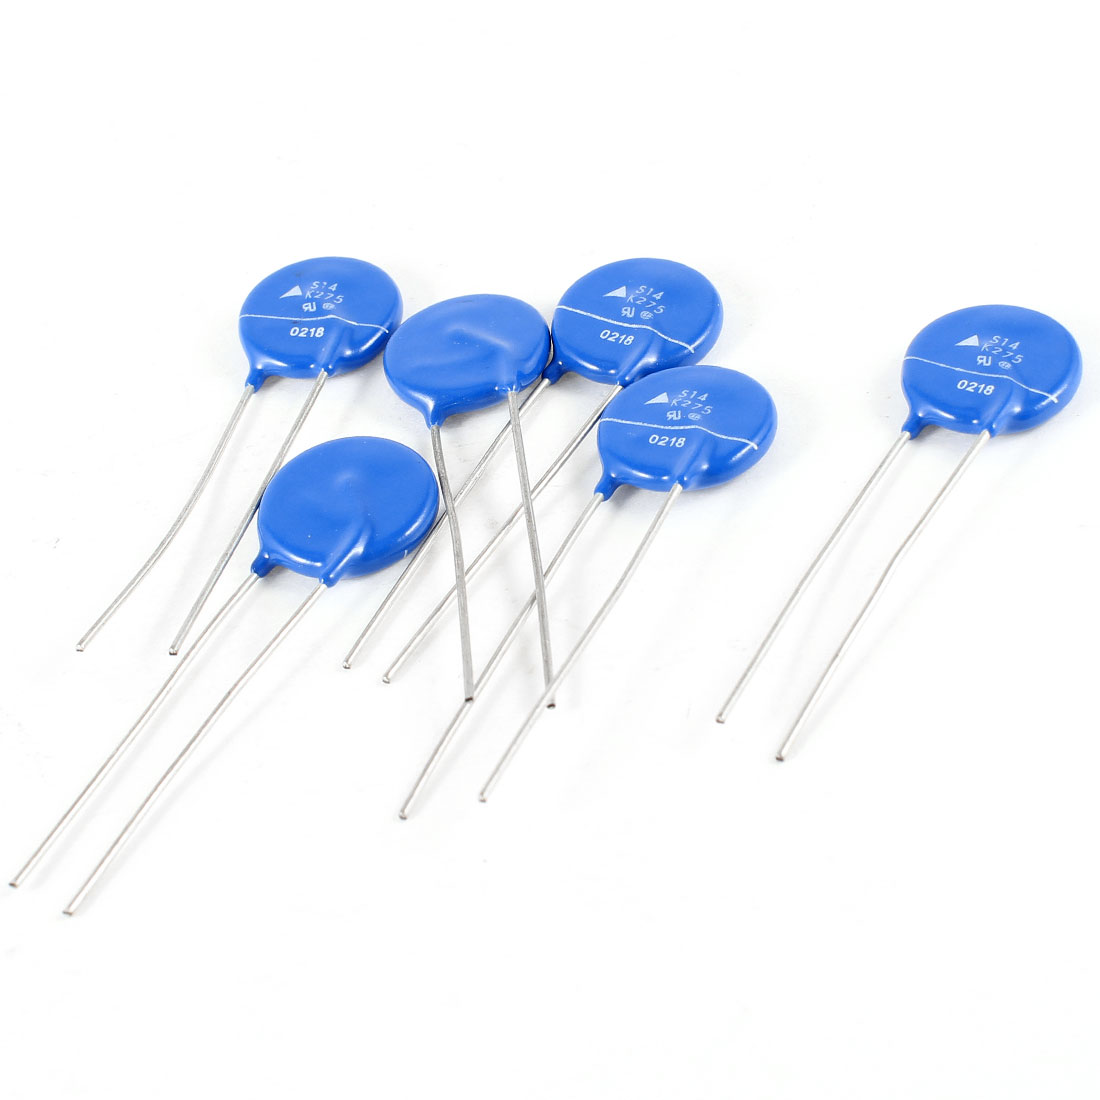 6 Pcs Radial Lead Voltage Dependent Resistor AC 275V S14K275